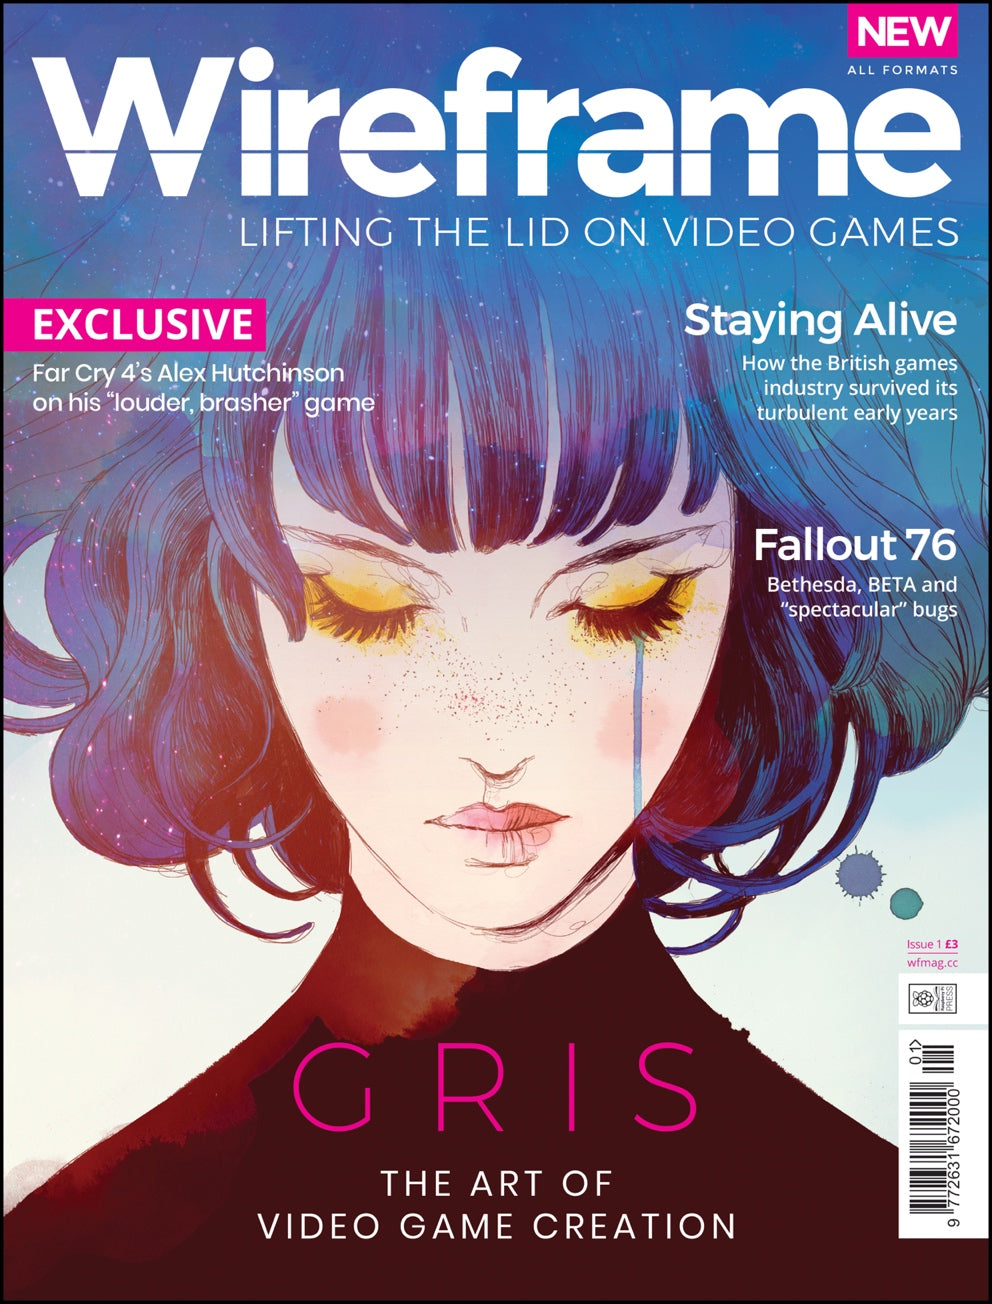 Wireframe magazine #1